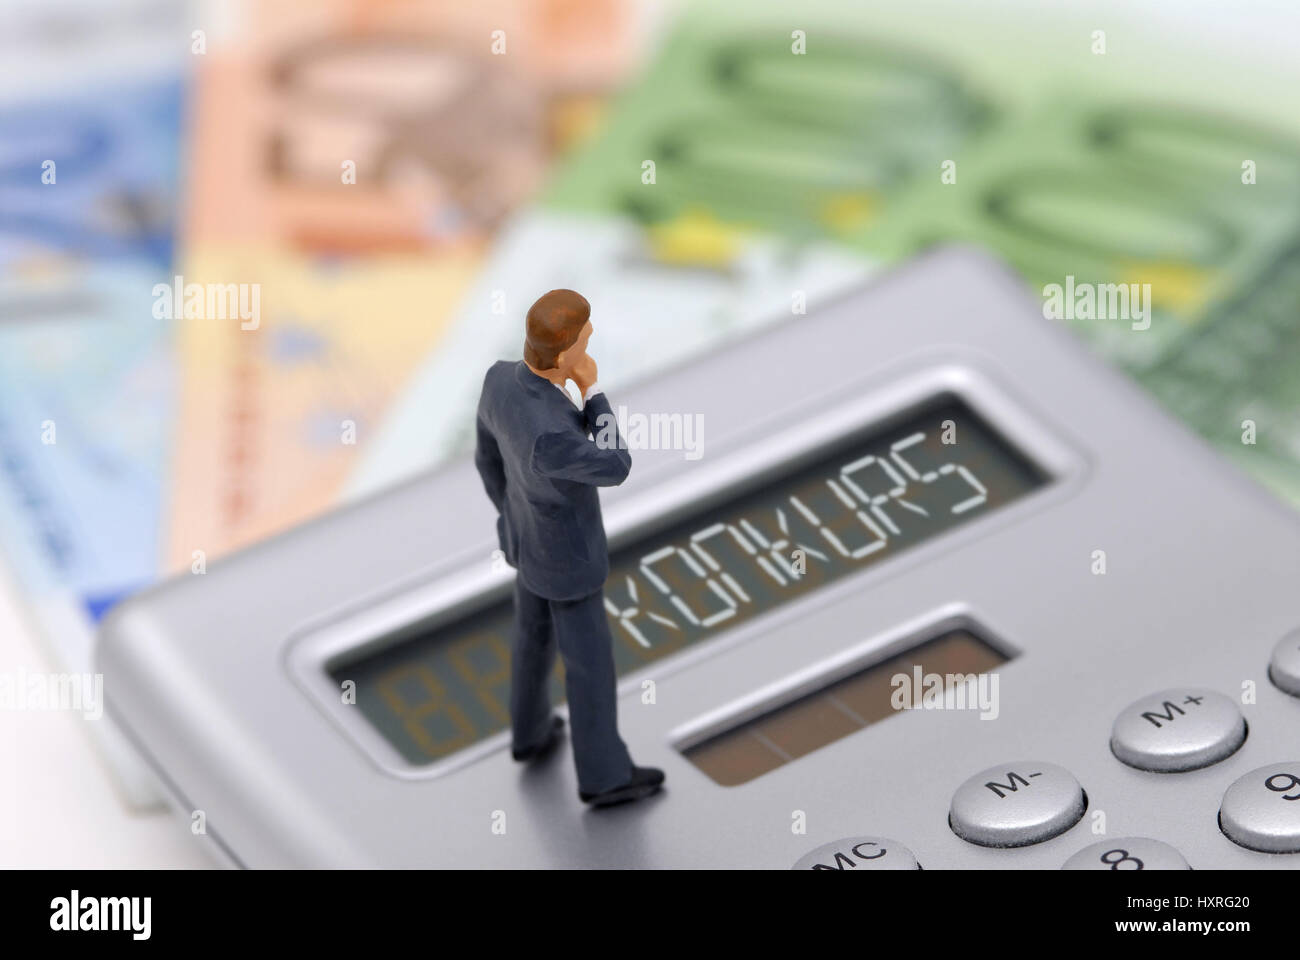 Insolvency, business closure, bankruptcy, bankruptcy, insolvency management, insolvency governor, bankruptcy, bankruptcies, - Stock Image